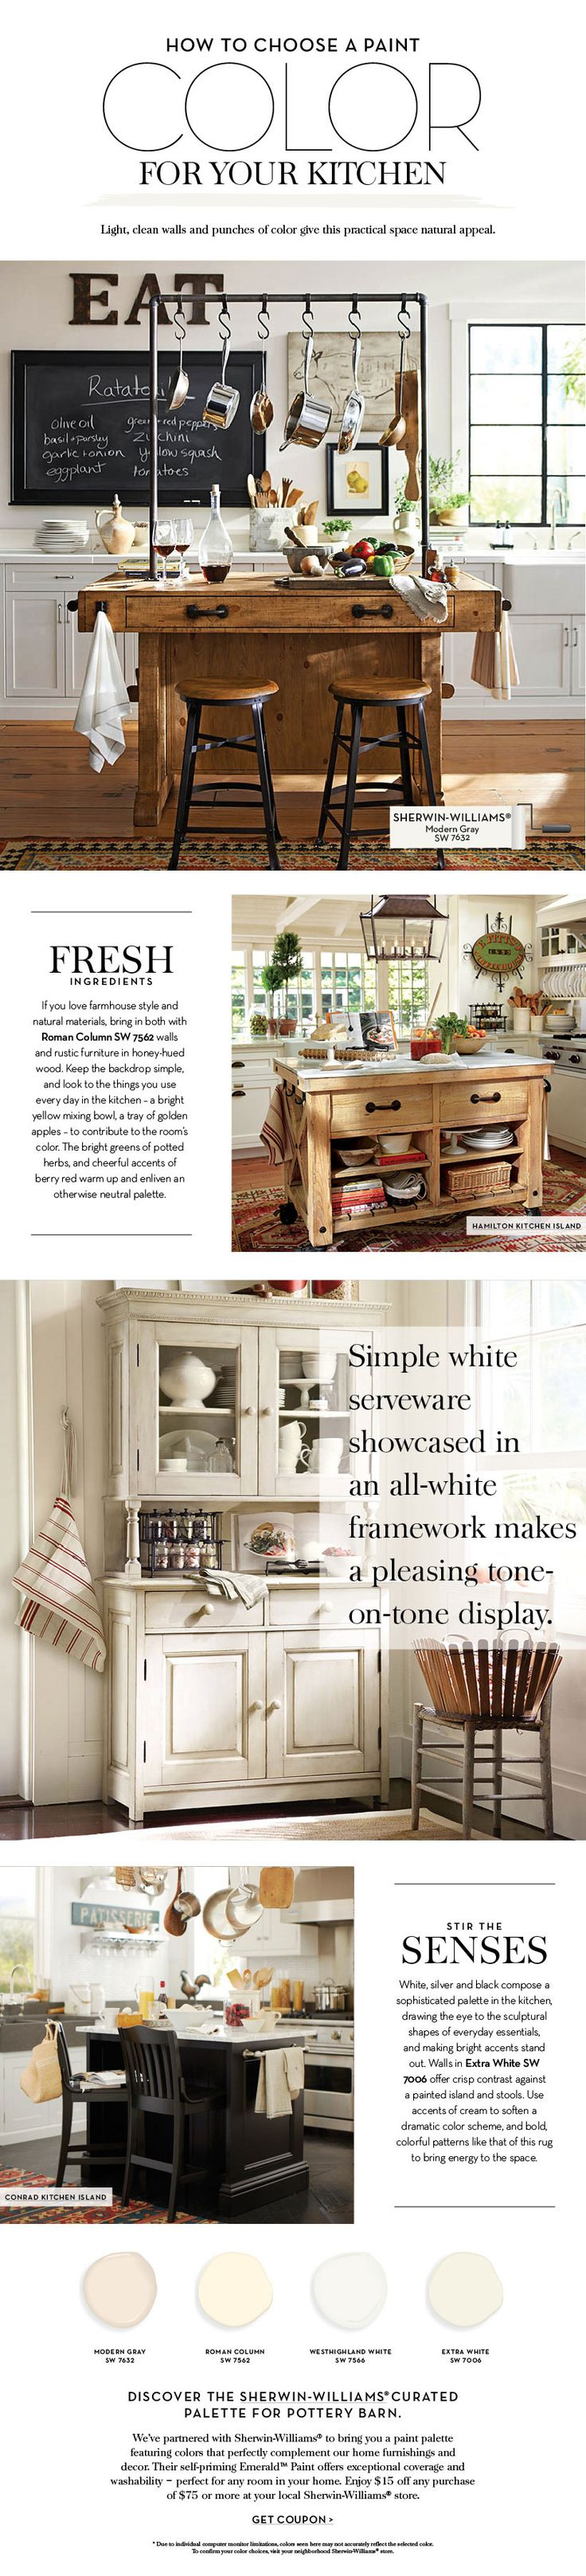 Choose a Paint Color For Your Kitchen   Pottery Barn